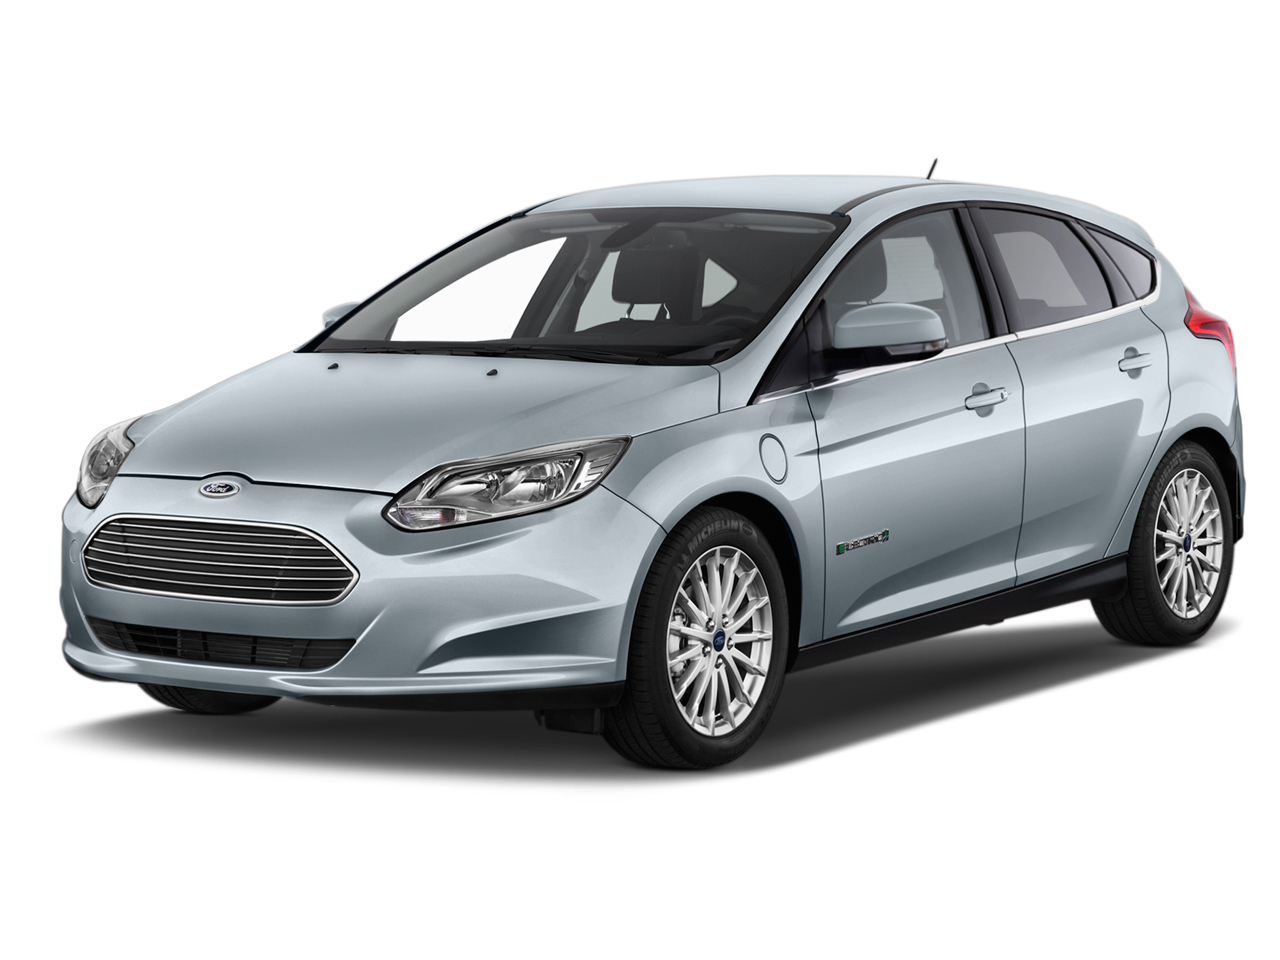 2013 ford focus electric review, ratings, specs, prices, and photos